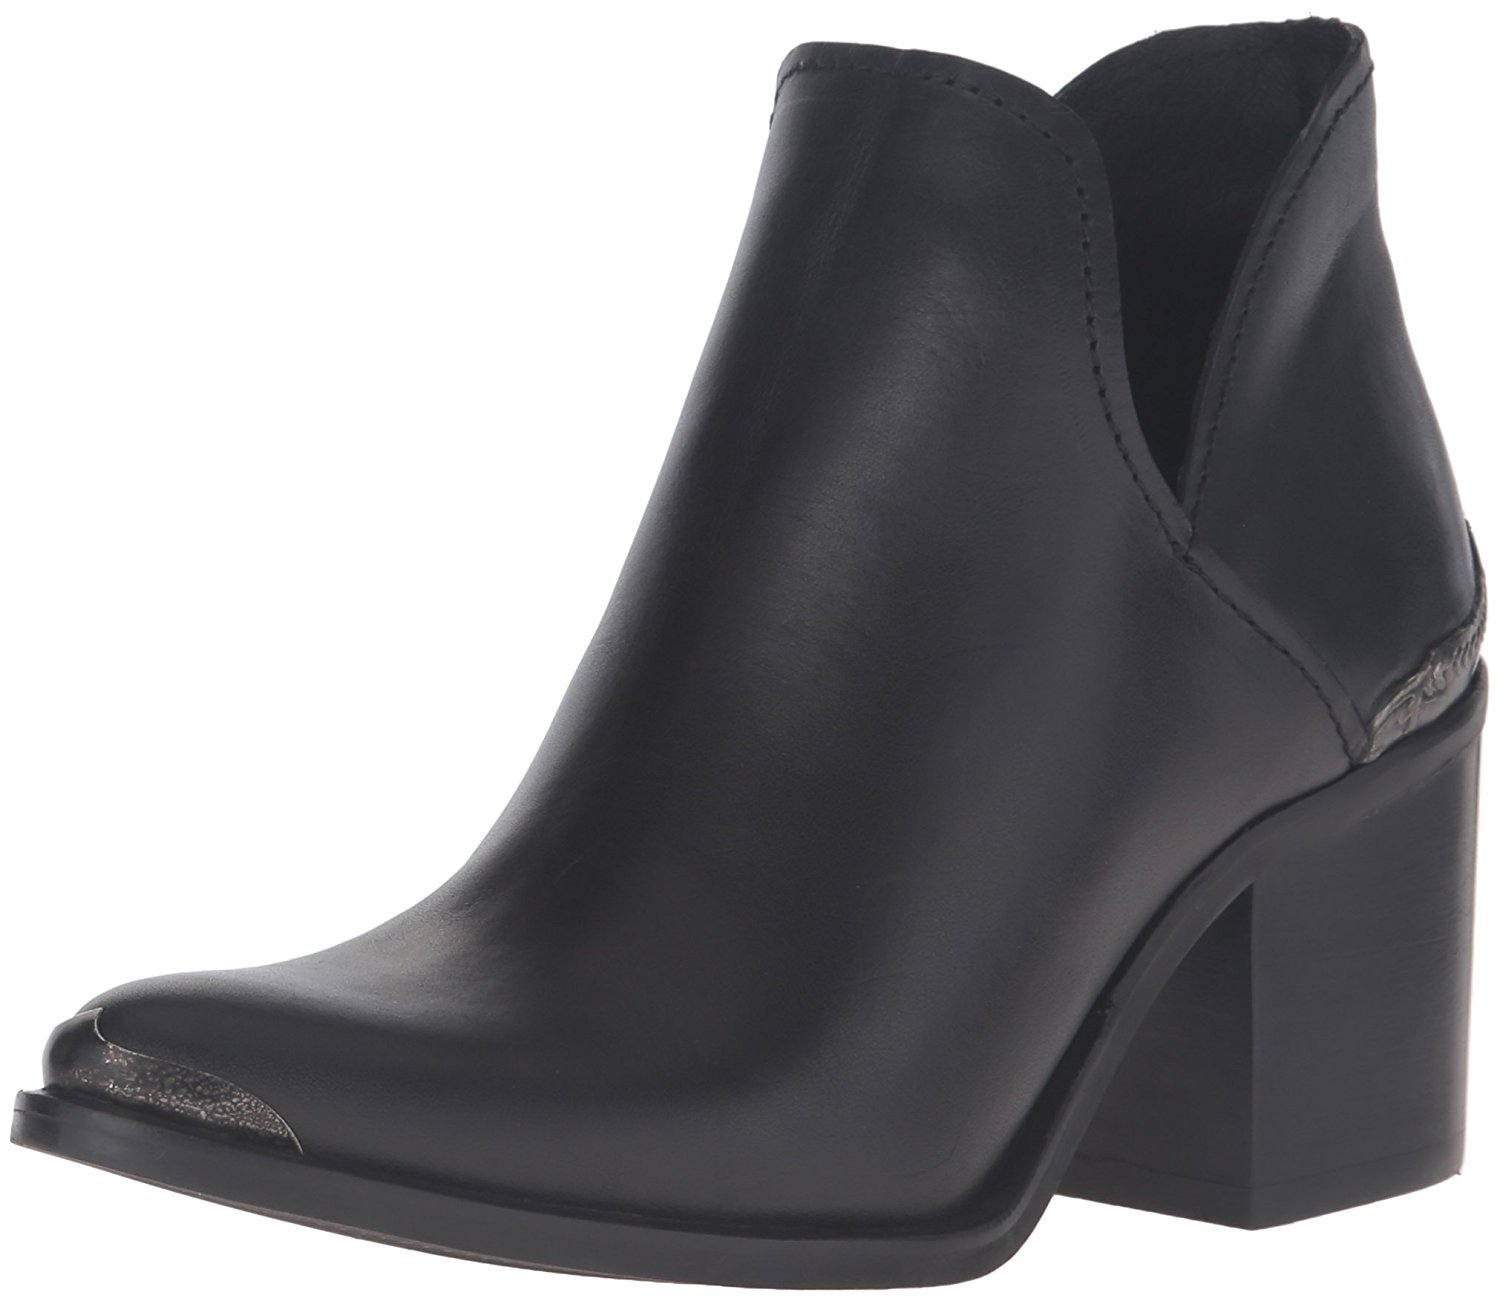 Steve Madden Women's Posey Ankle Bootie, Black Leather, Size 9.5